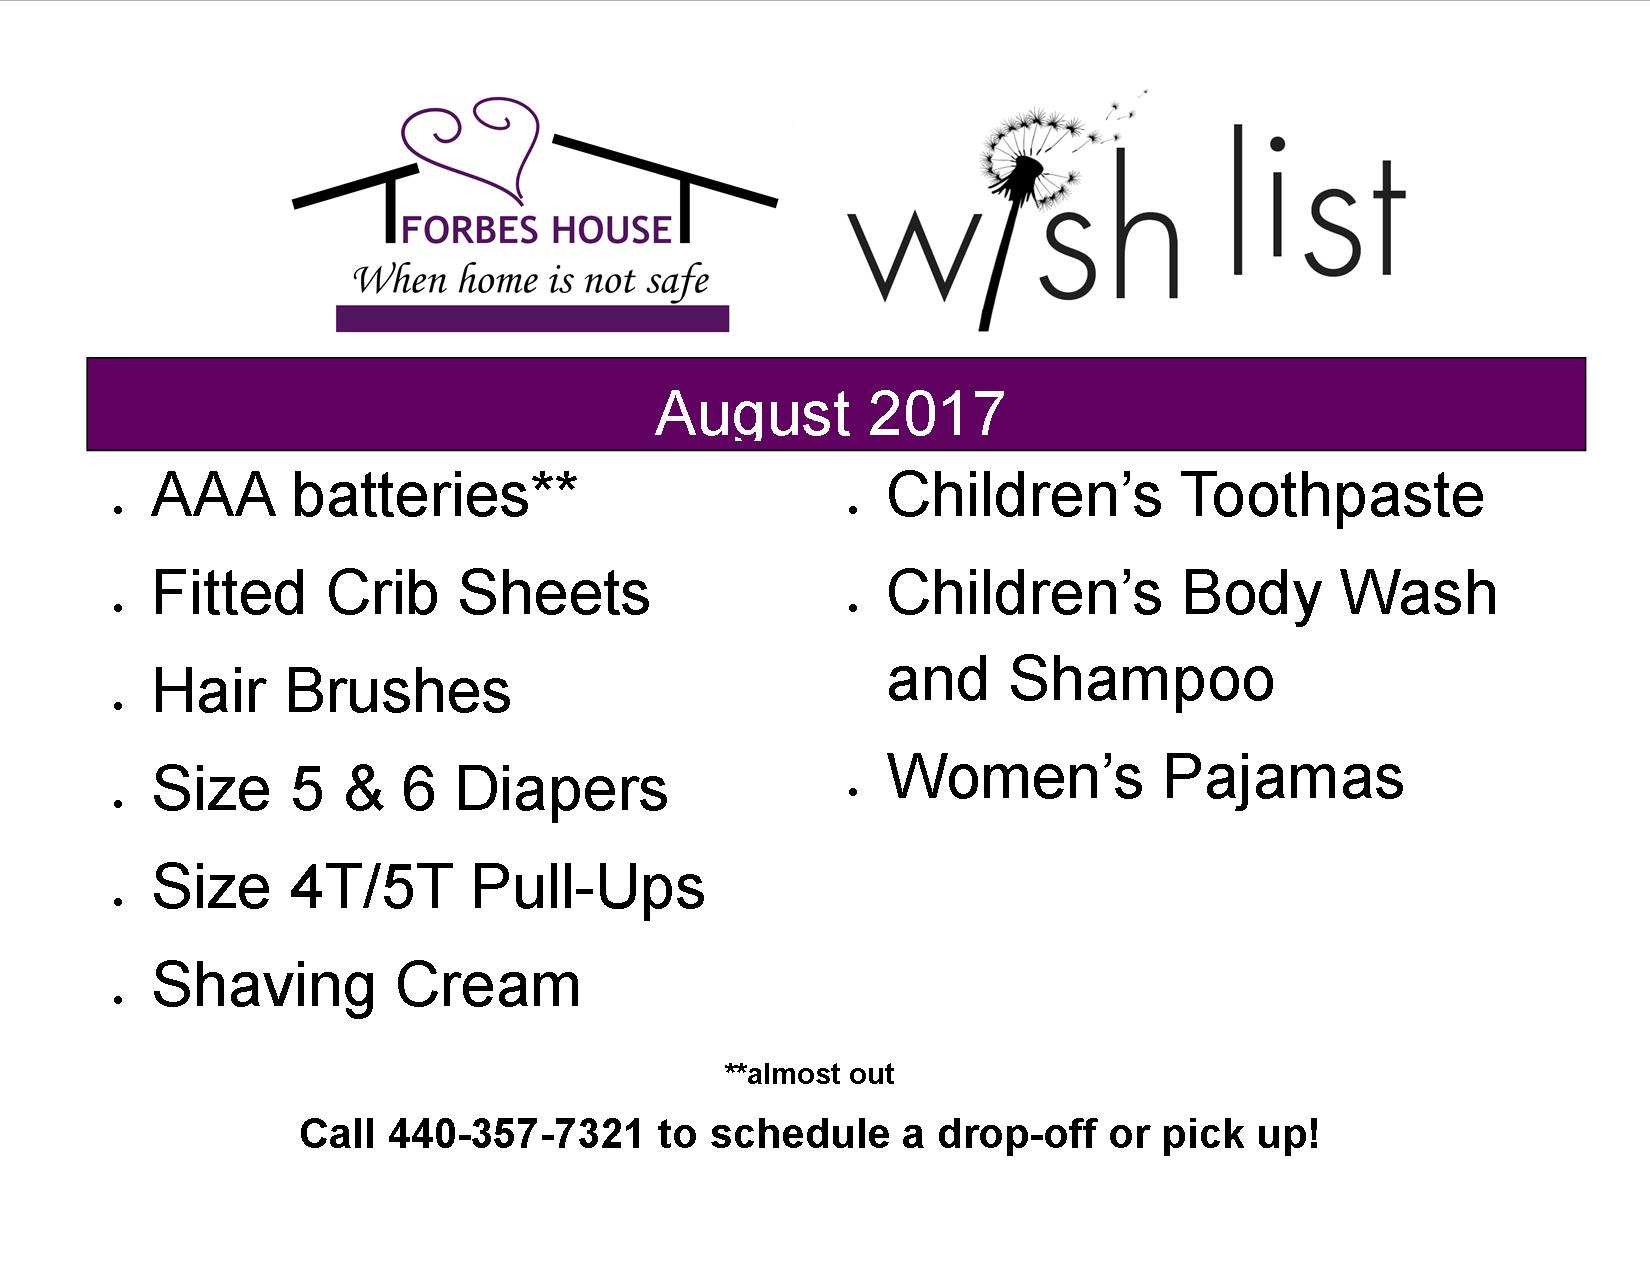 Forbes House Monthly Wish List Items